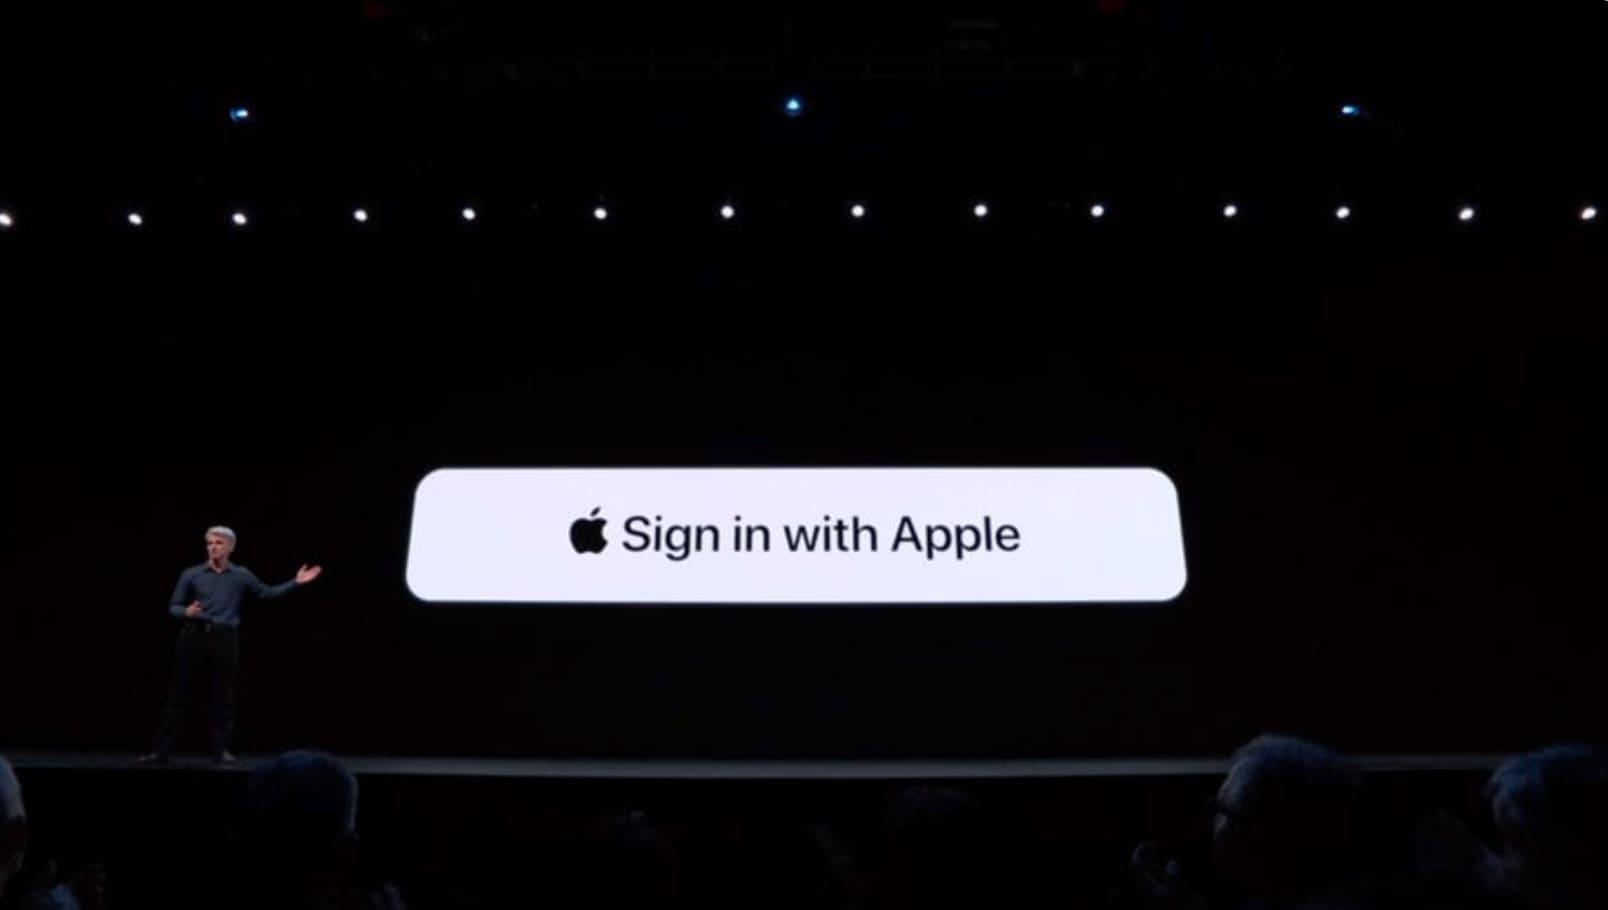 Loguearse con Apple iOS 13